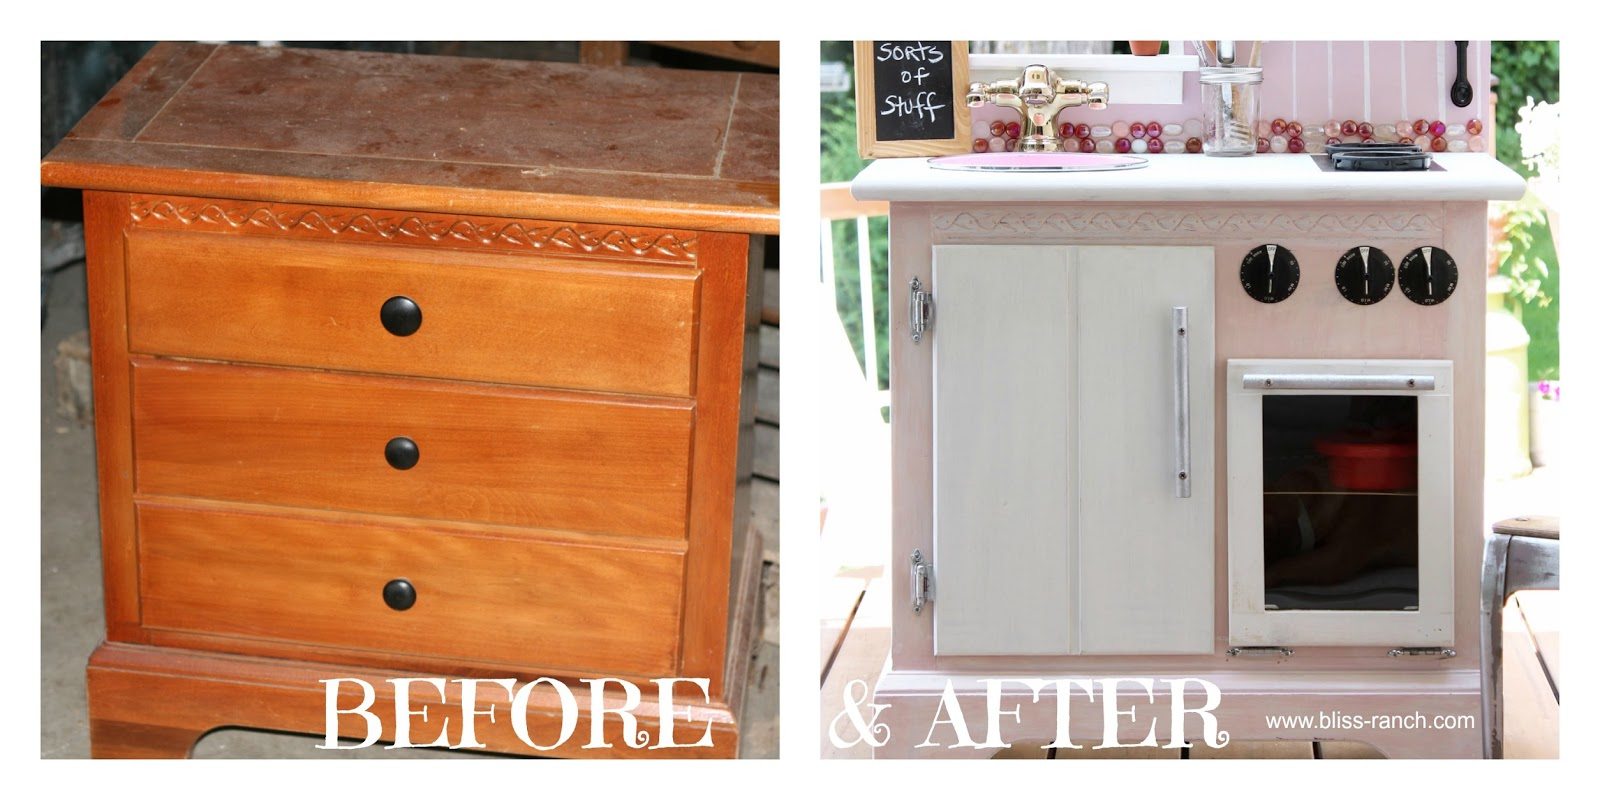 Upcycled Kitchen Bliss Ranch Pink Play Kitchen Transformation Details